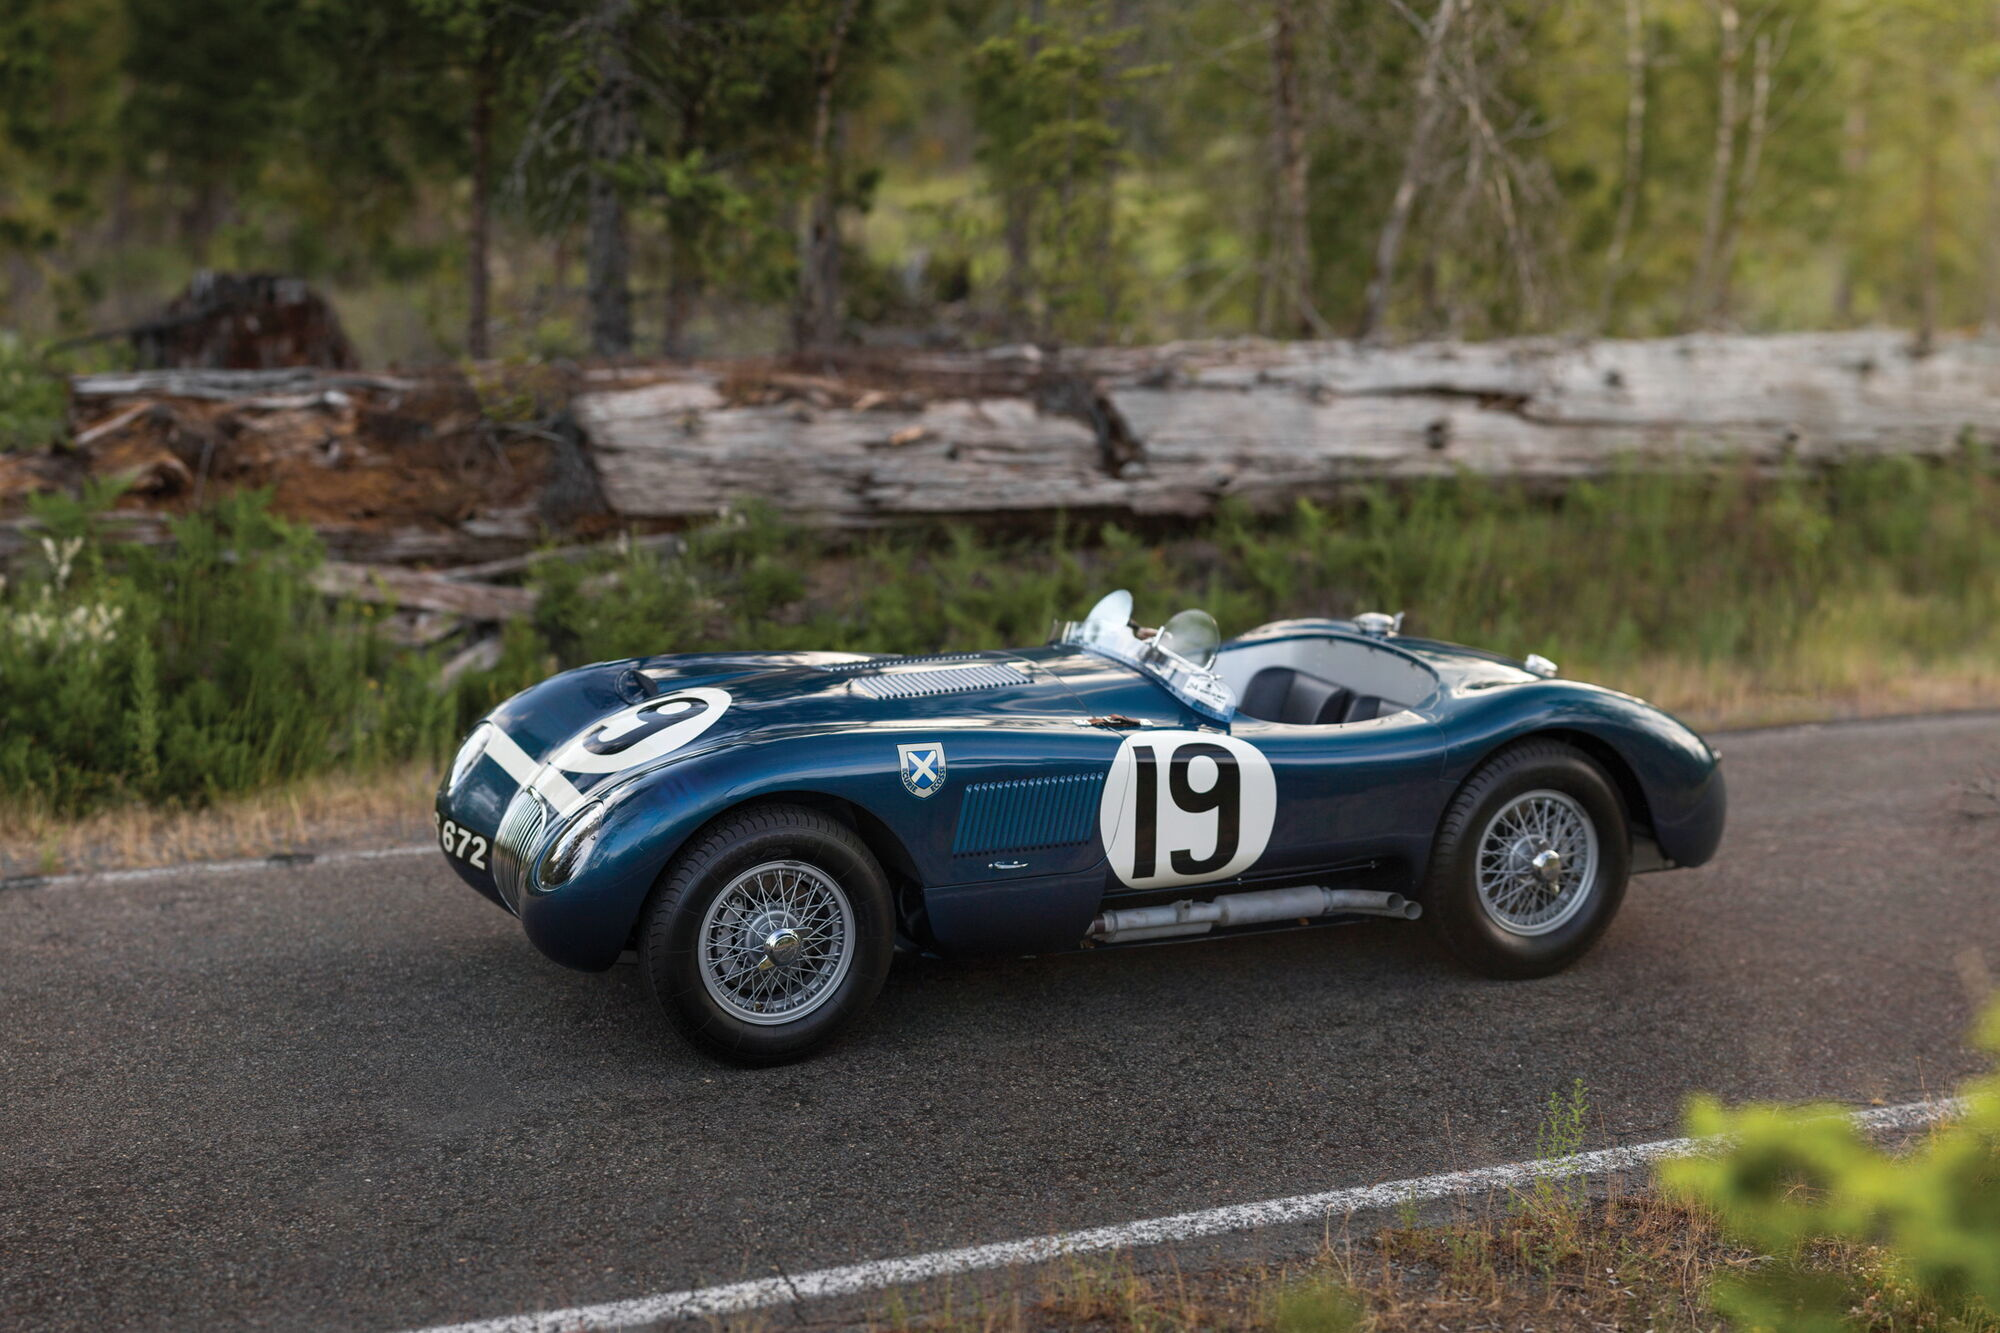 Jaguar C-Type Works Lightweight, финишировавший 4-м в Ле-Мане в 1953 году, был продан за астрономическую сумму $13,2 млн